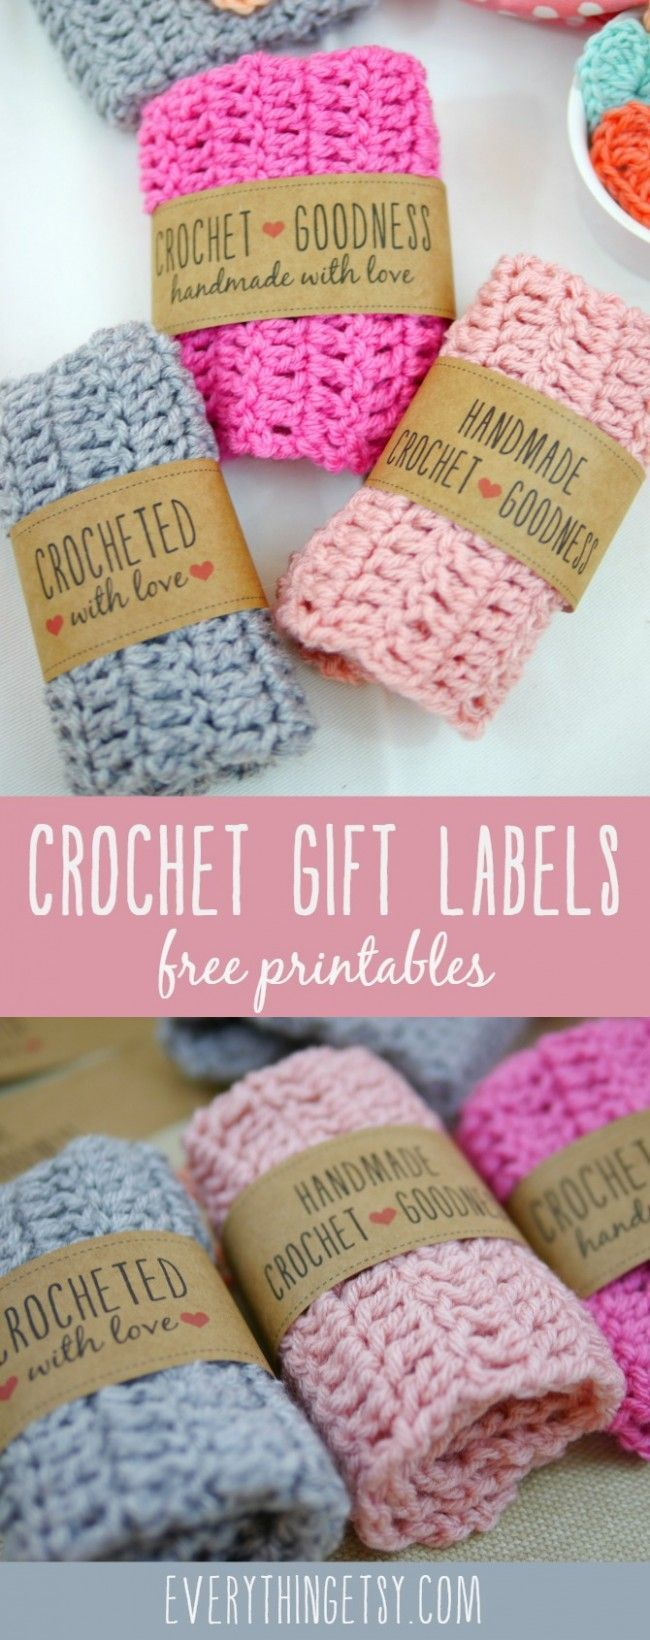 Free Printable Crochet Gift Labels - EverythingEtsy.com #crochet #printables #diy